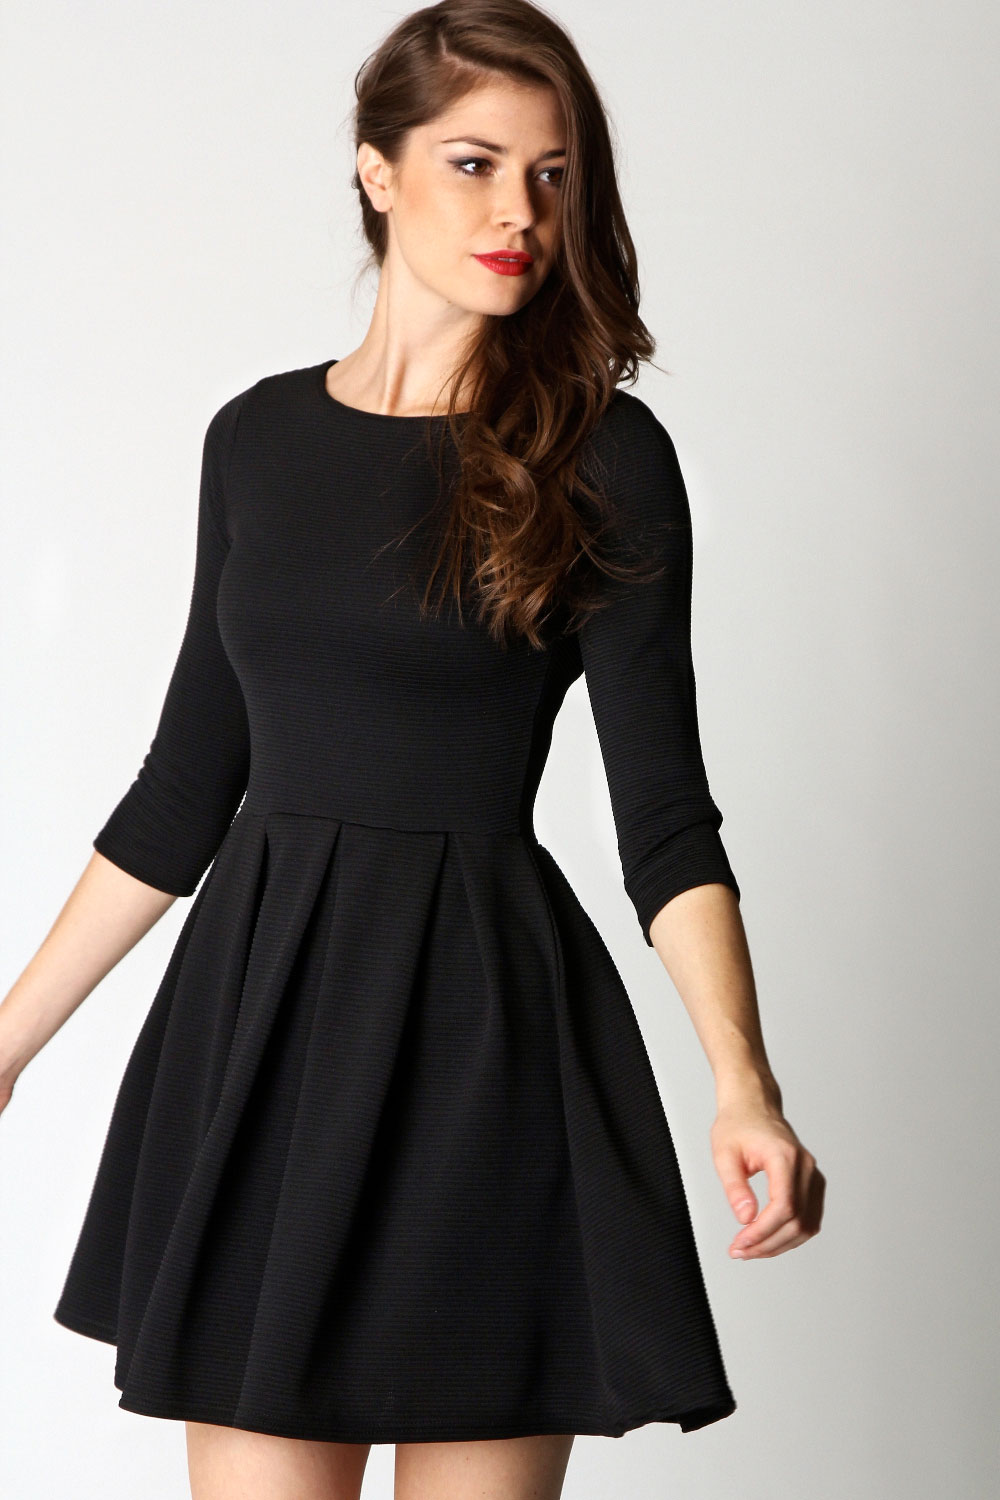 long sleeve skater dress dressed up girl